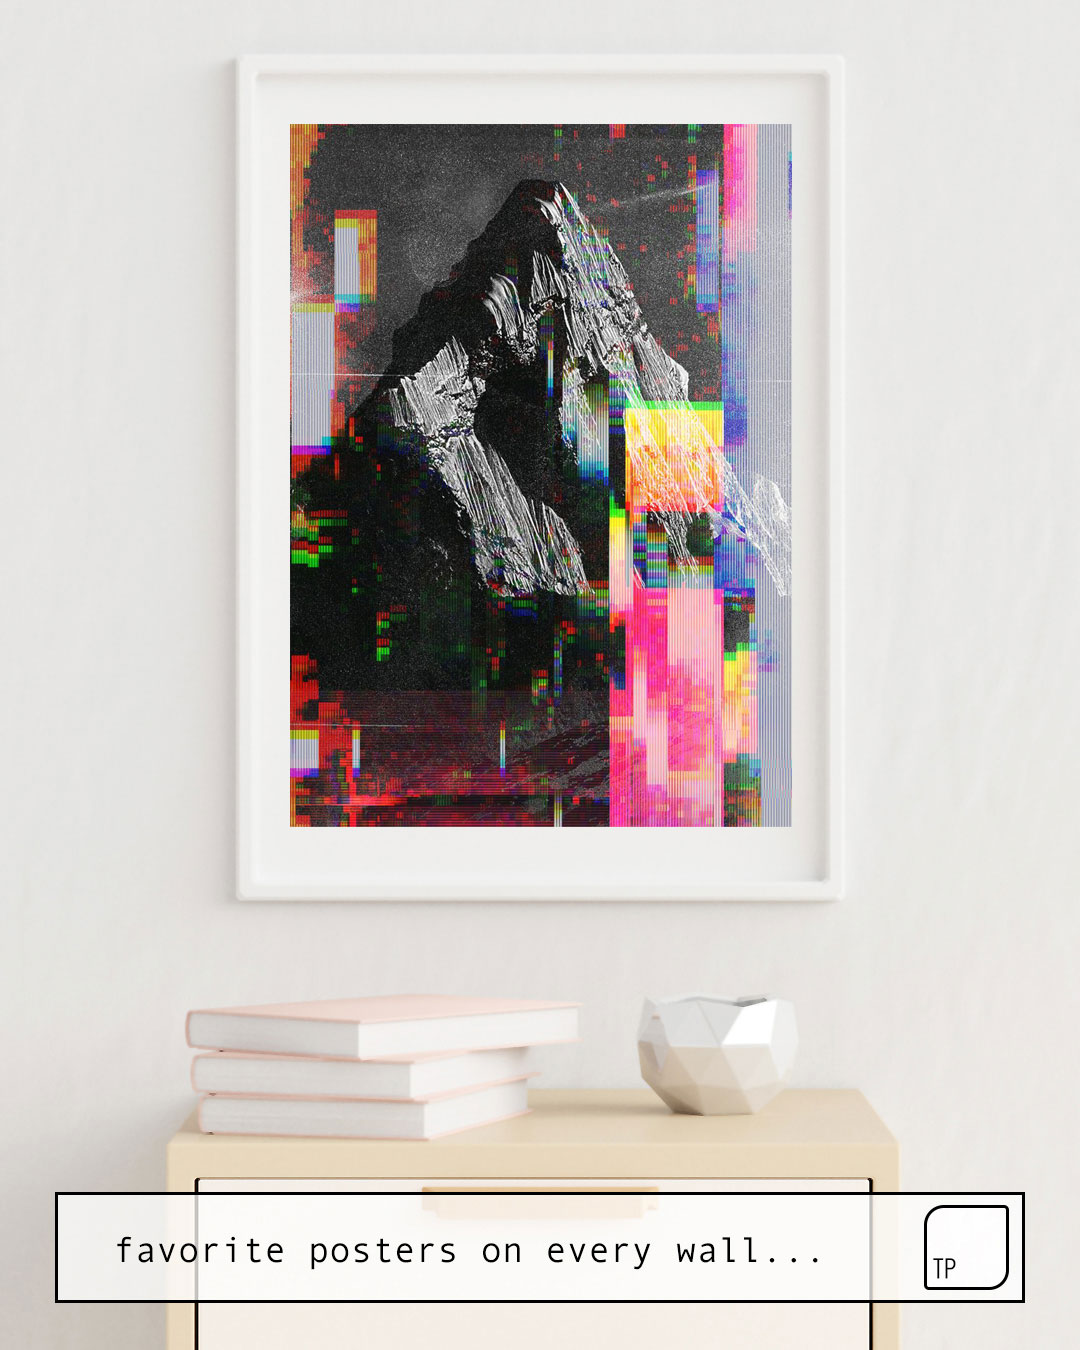 Poster | MOUNTAIN GLITCH III by Andreas Lie